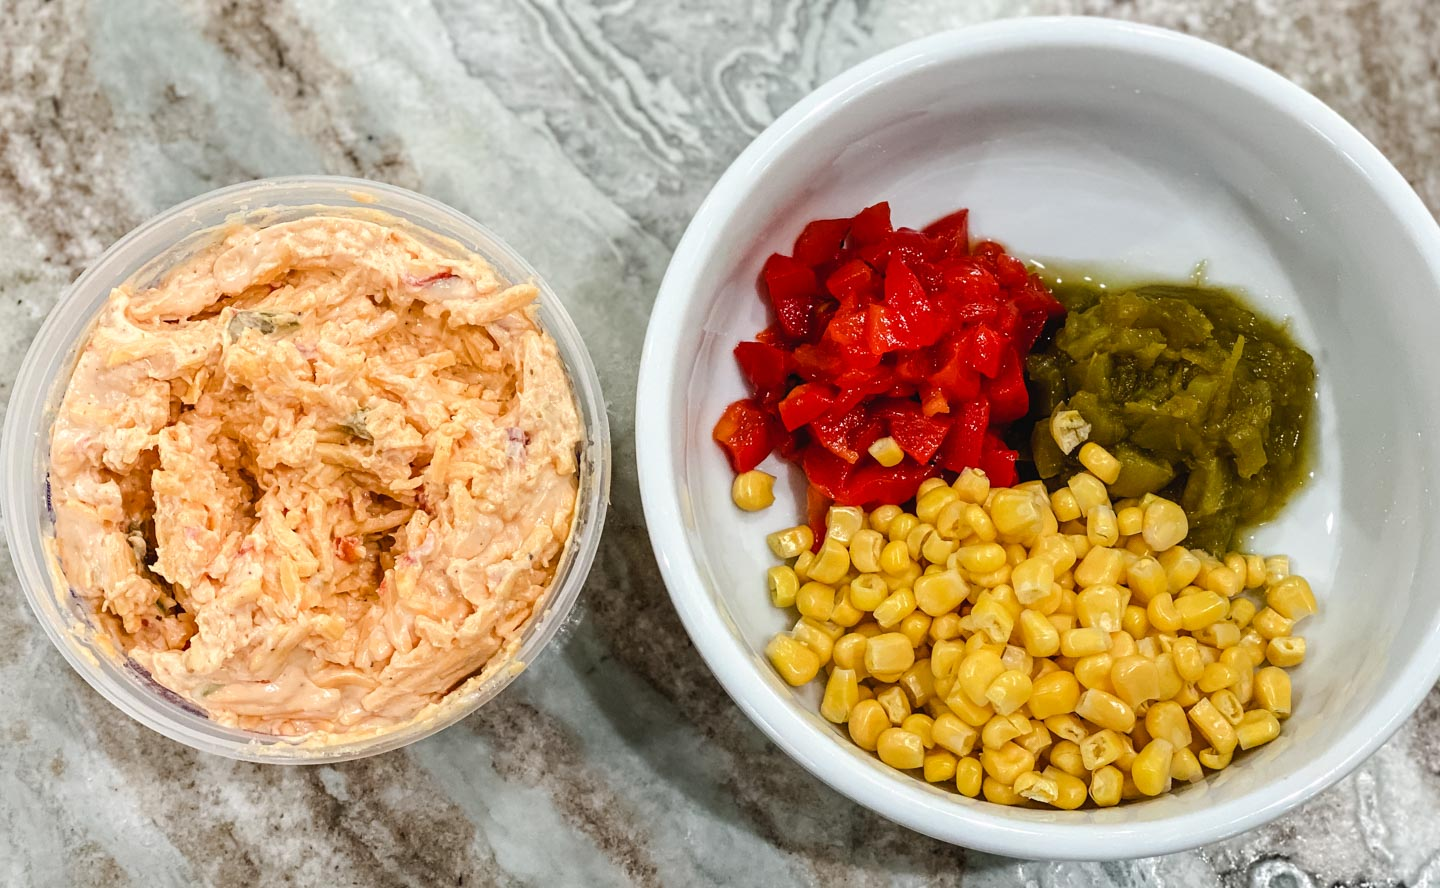 Bowl of pimento cheese and a bowl or corn, red peppers and green chilis.